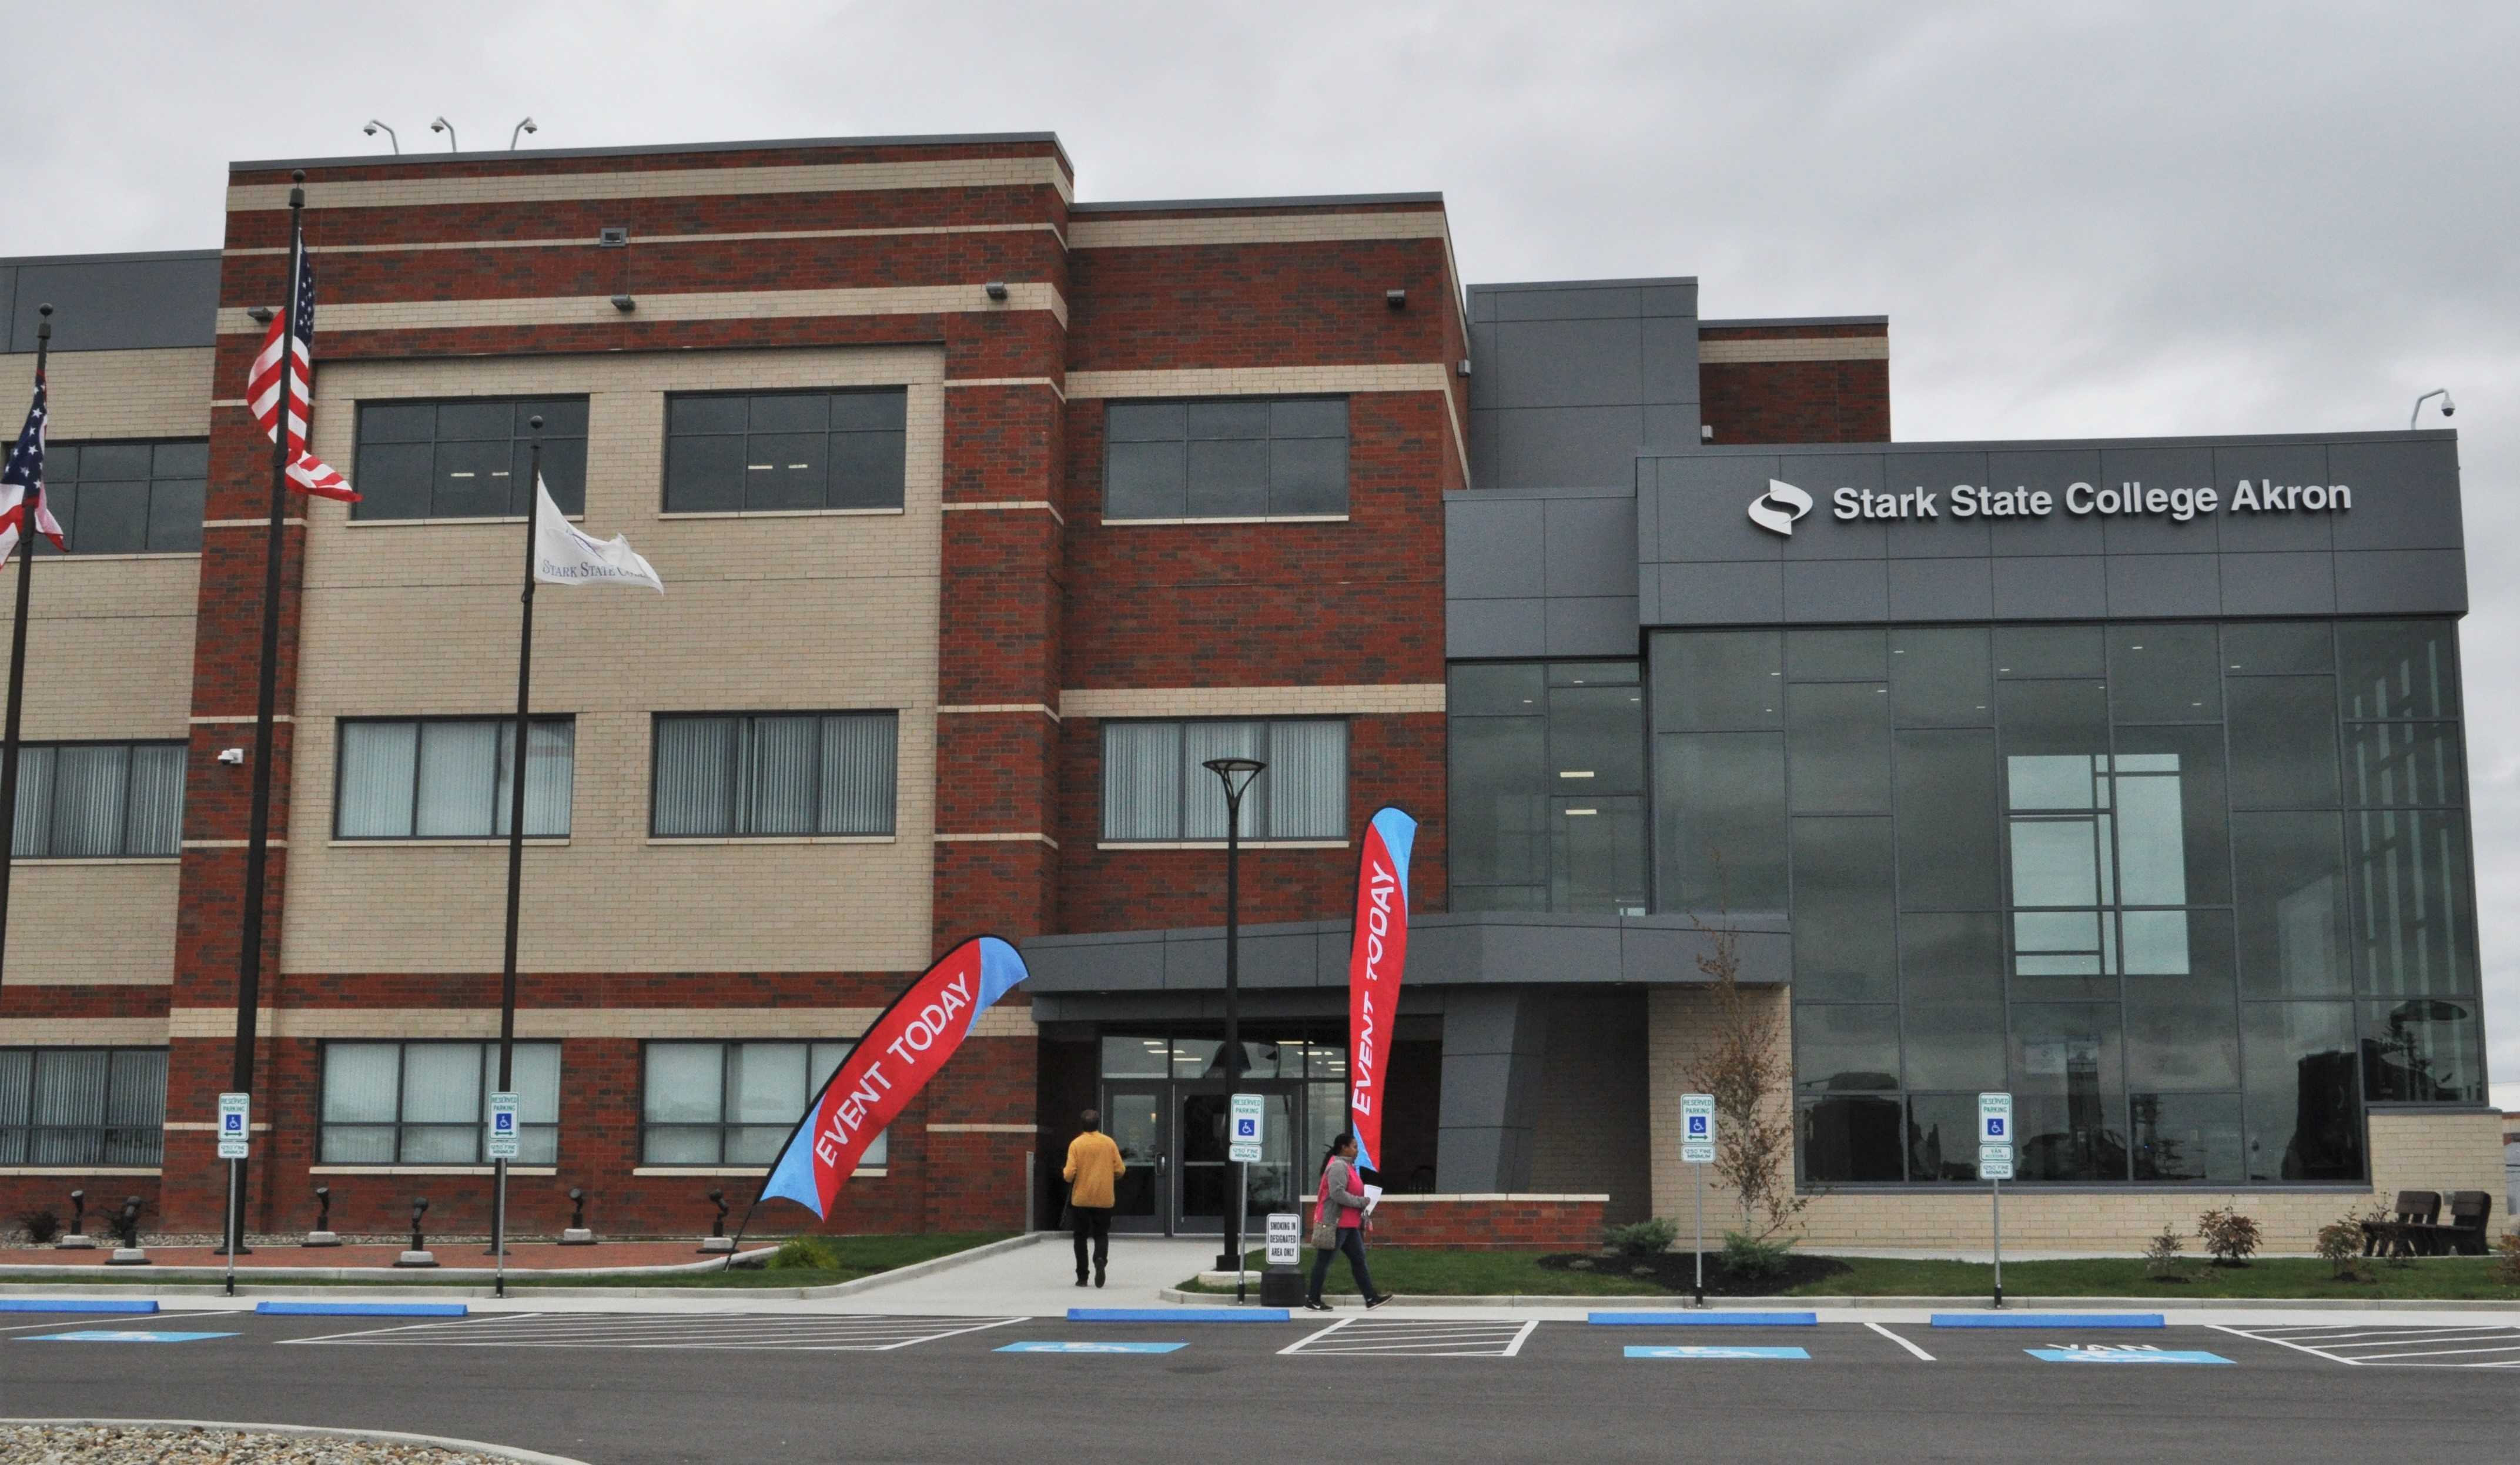 The new Stark State College building on Perkins St. in Akron is just half a mile from the UA campus.